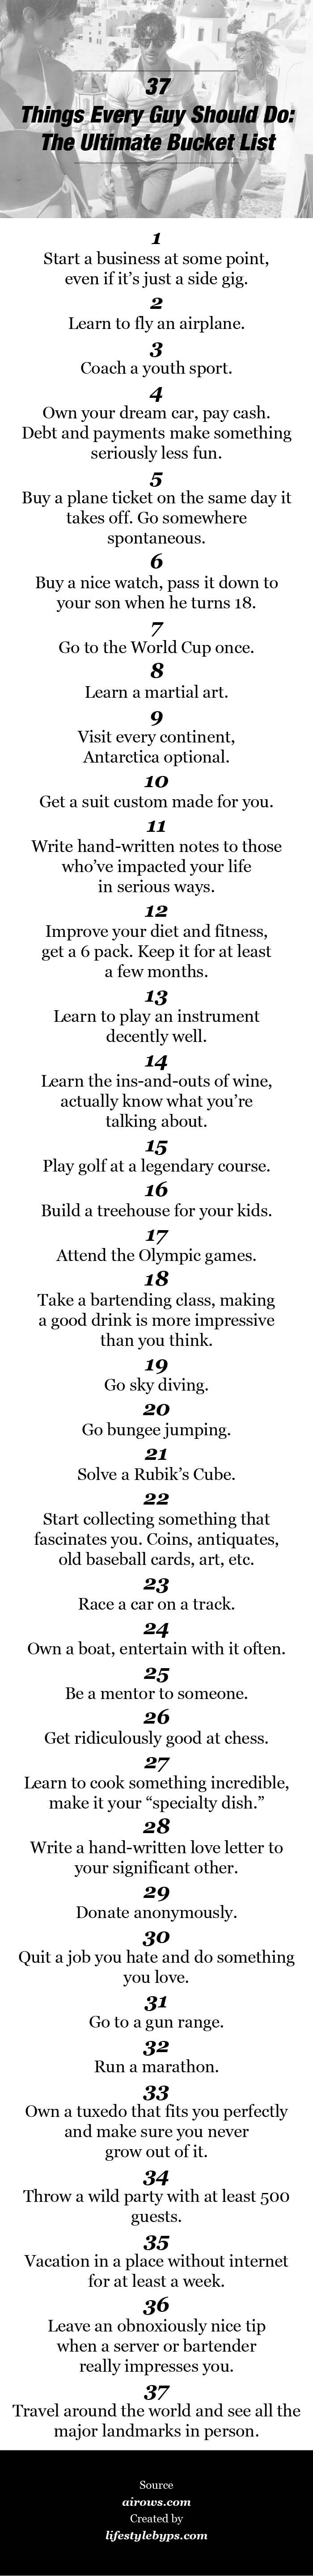 Best 25 moving out list ideas on pinterest moving out checklist 37 things every guy should do the ultimate bucket list ccuart Images